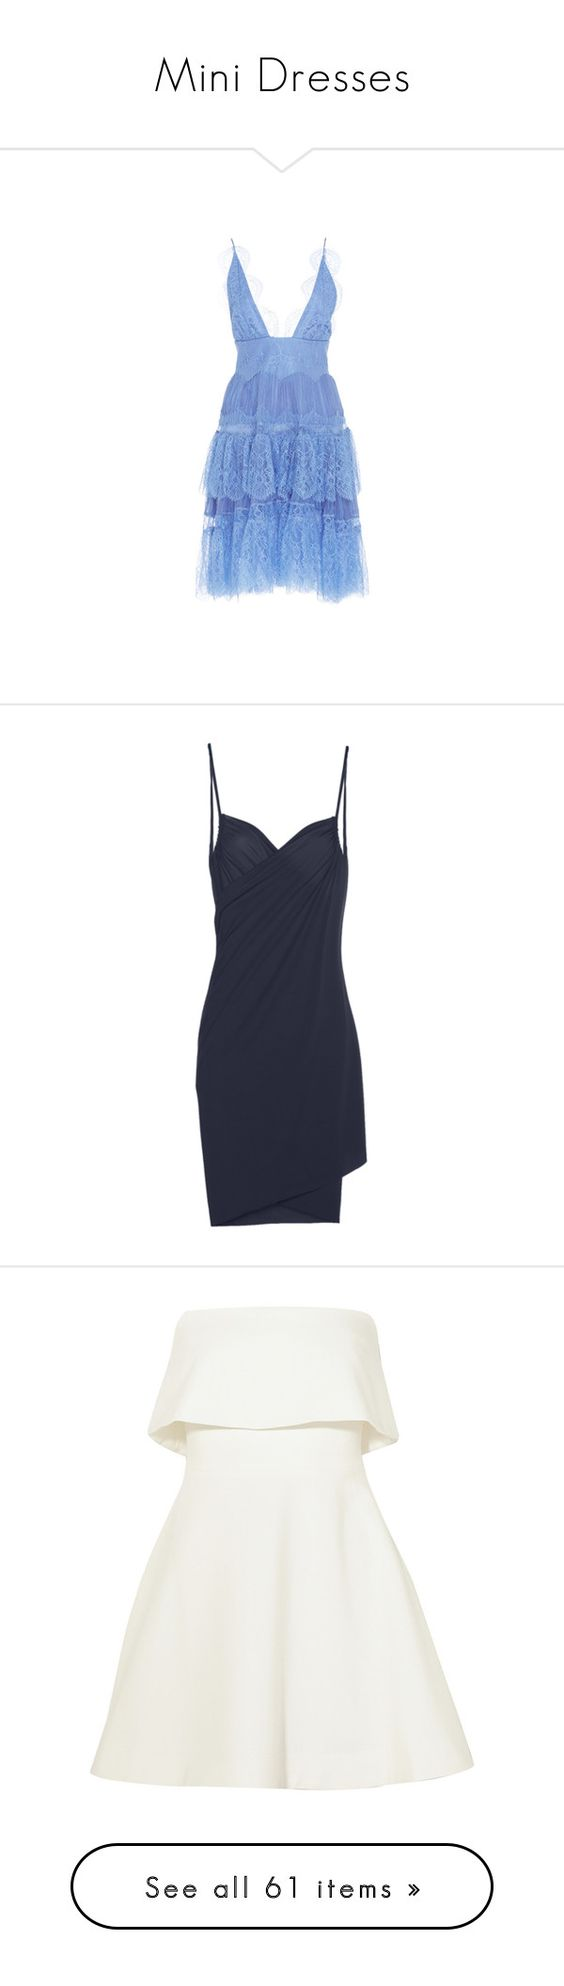 """""""Mini Dresses"""" by marchmaiden ❤ liked on Polyvore featuring dresses, maria lucia hohan, navy blue, swimwear, strappy dress, wrap dress, navy blue dress, wraparound dress, cosabella and vestidos"""